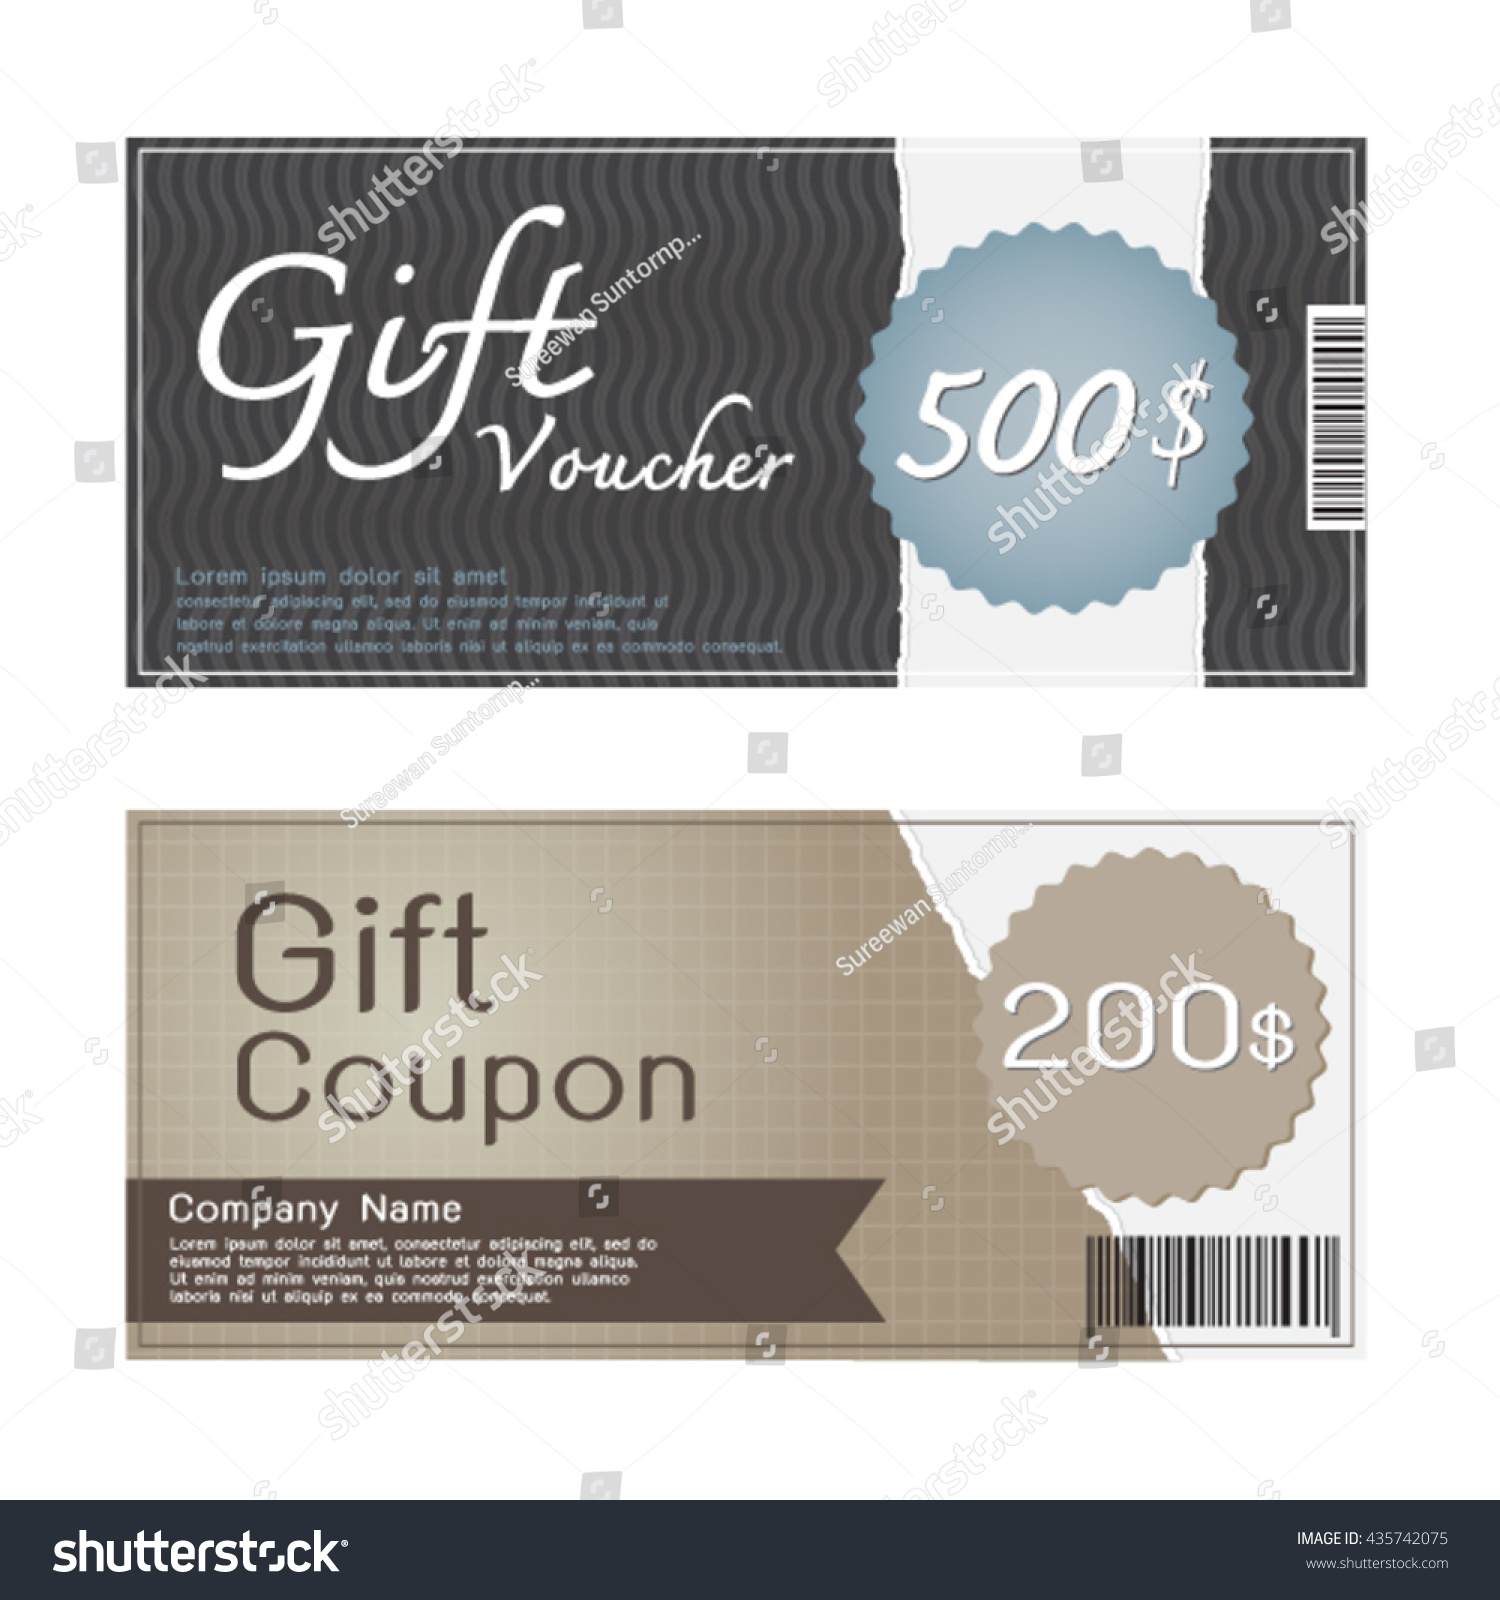 Gift Voucher Coupon Templates Design Stock Vector HD (Royalty Free ...